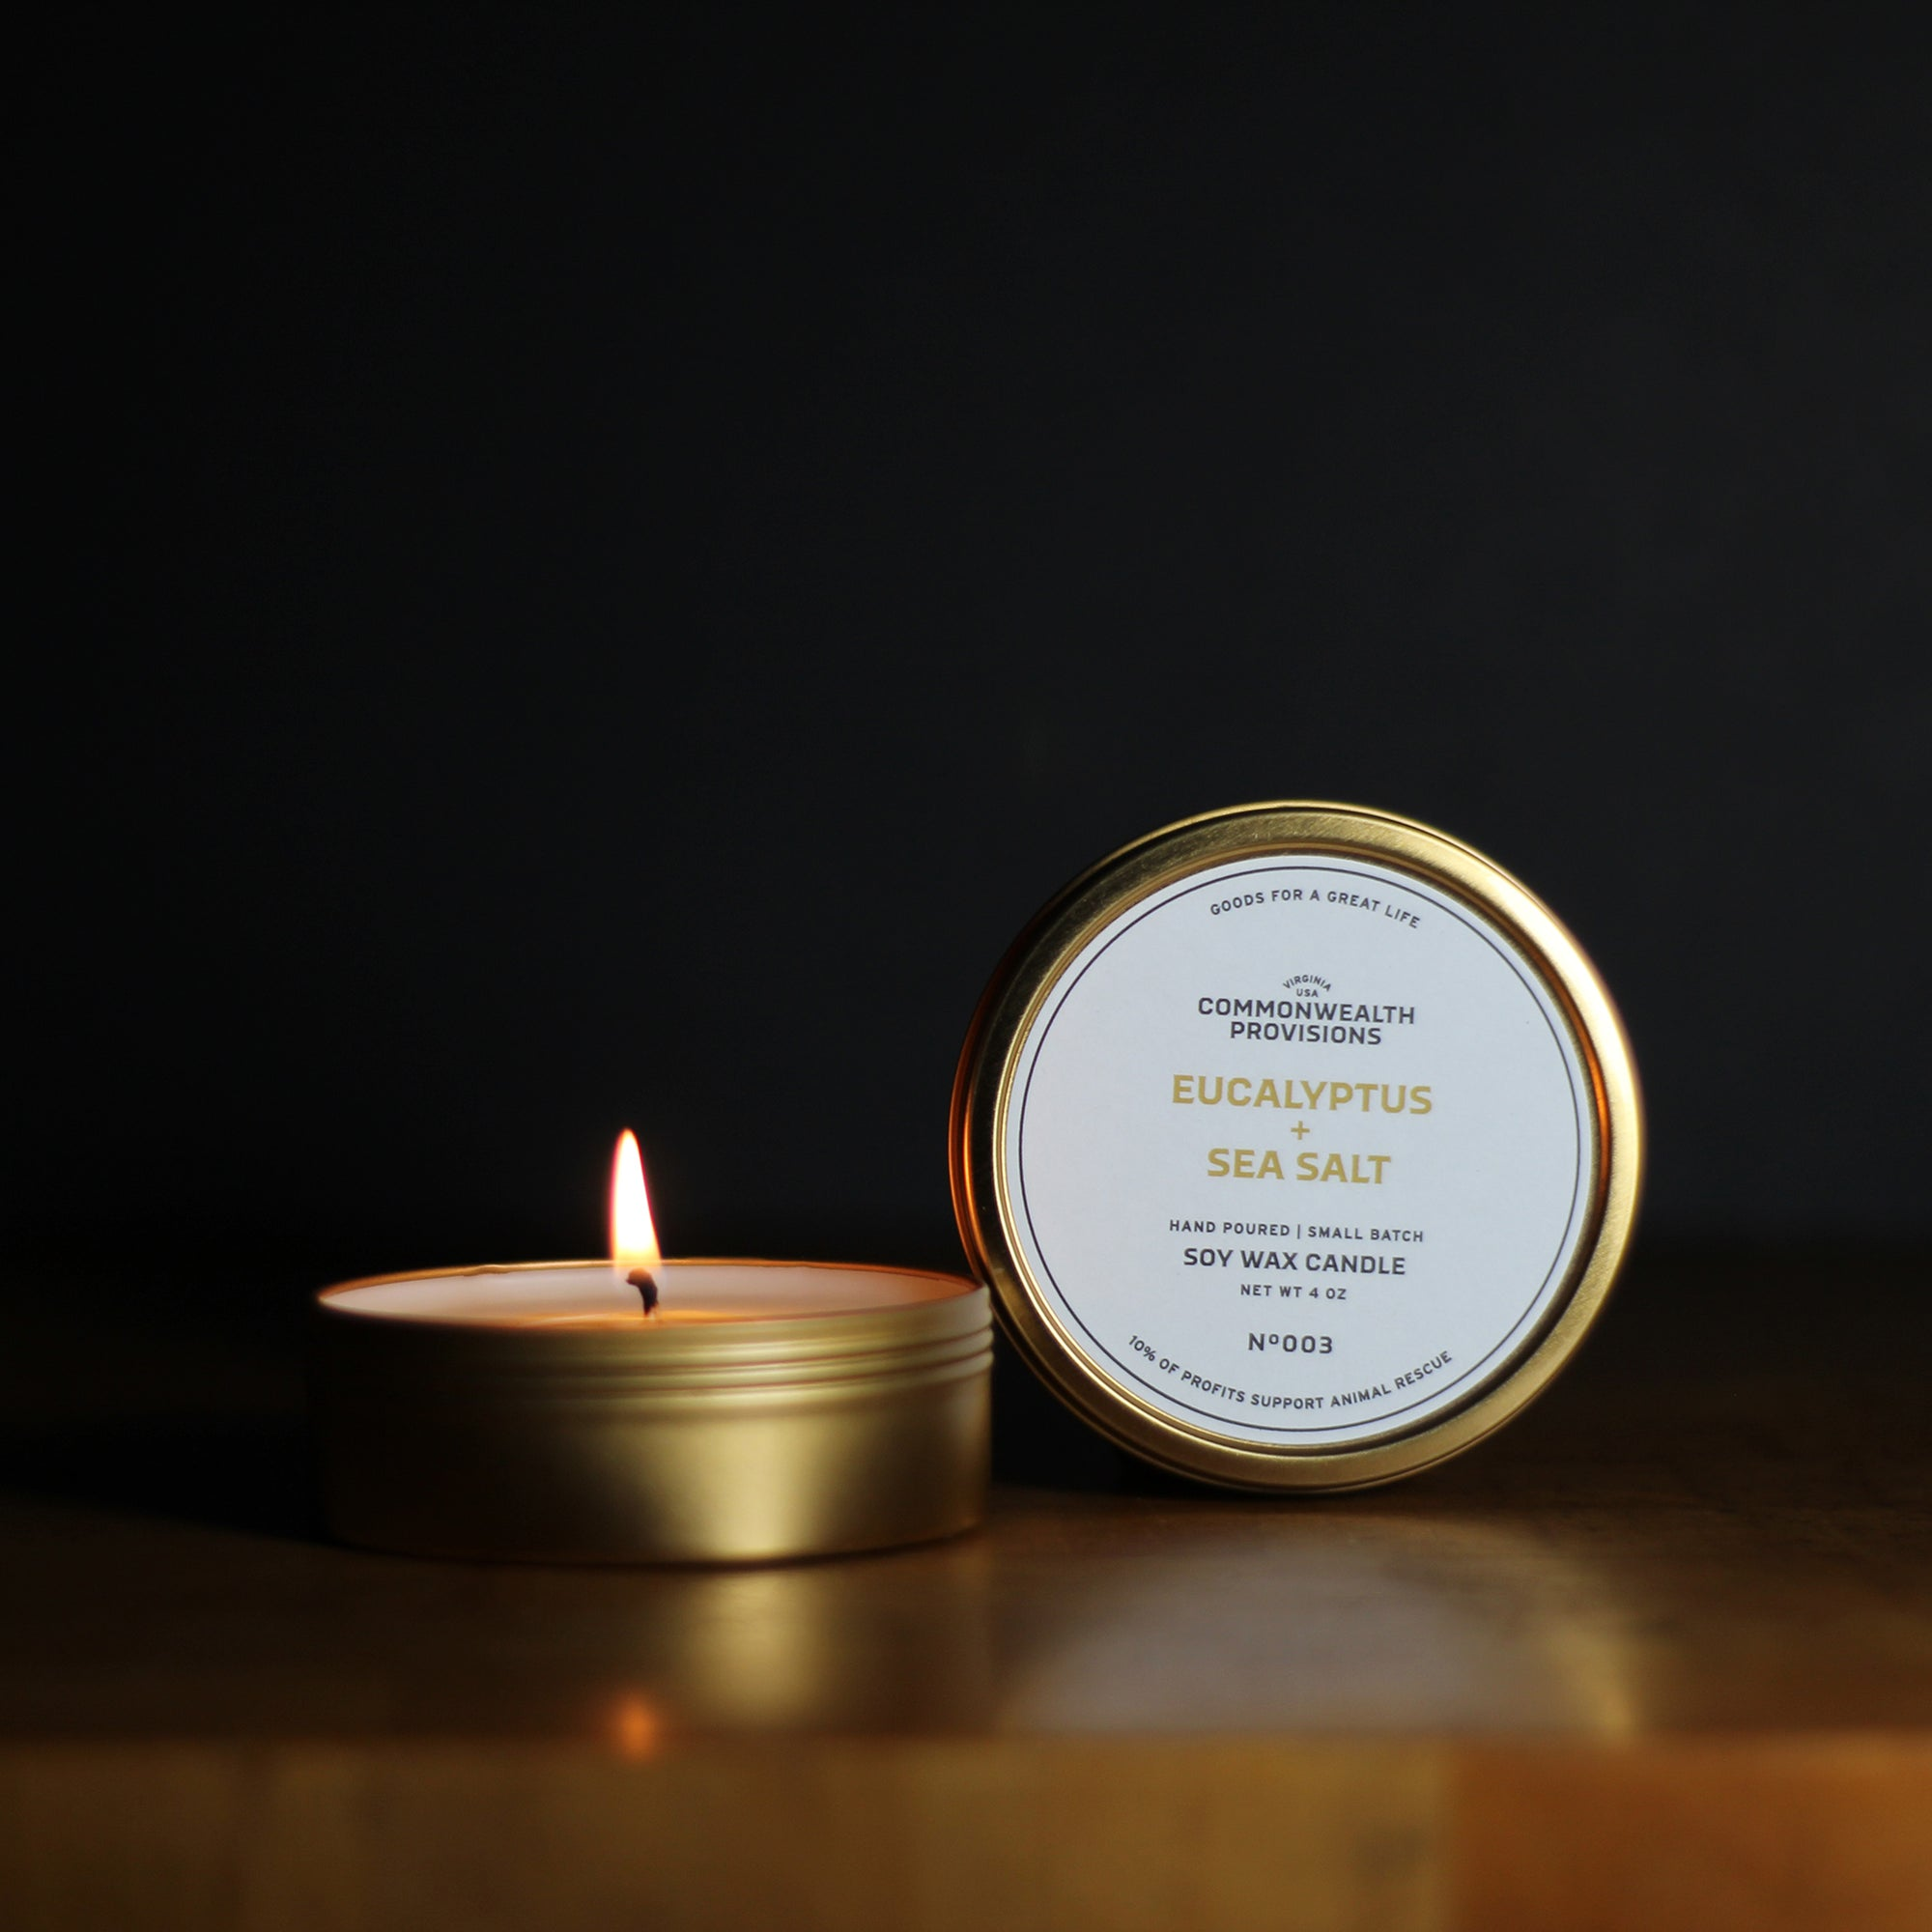 Commonwealth Provisions Eucalyptus + Sea Salt Travel Candle